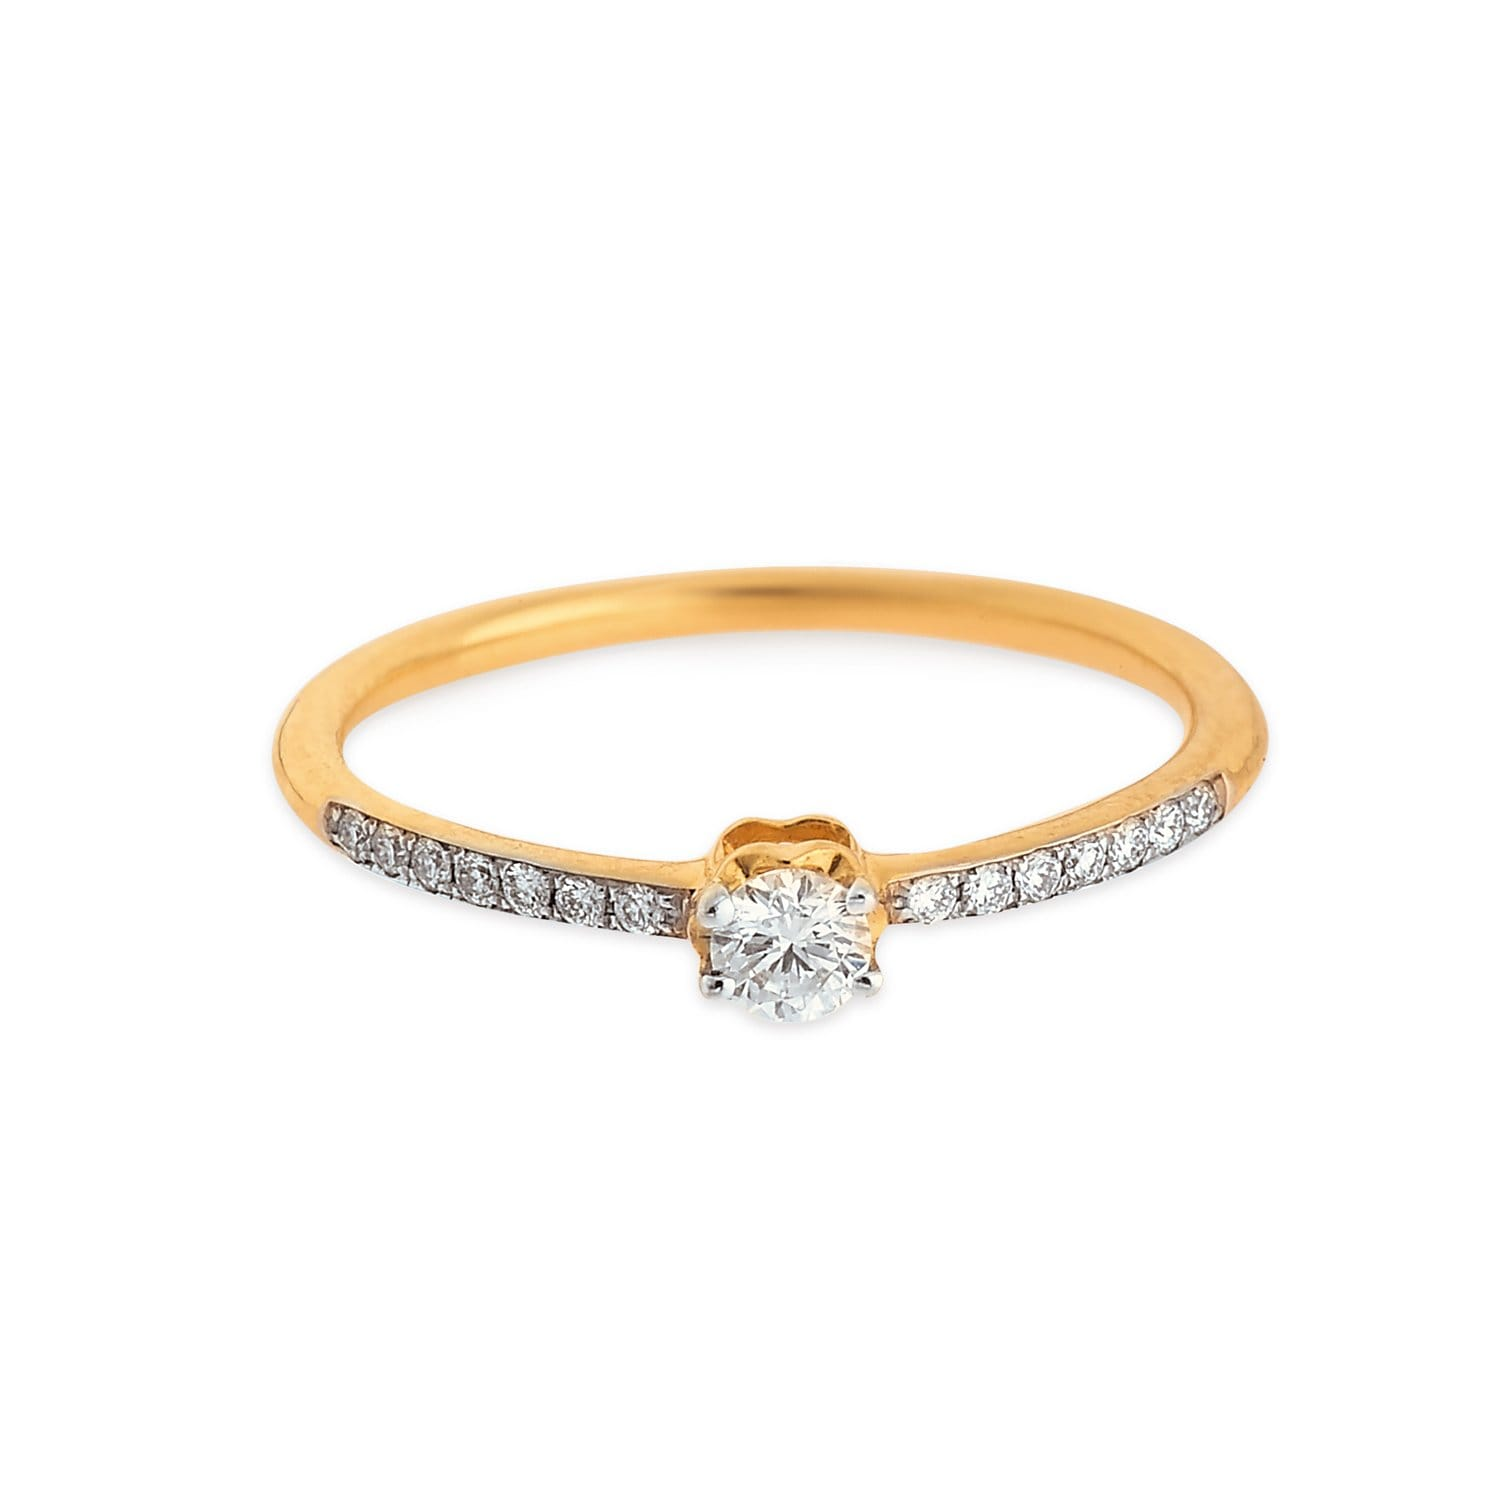 Tanishq Diamond Engagement Rings For Women With Price ...